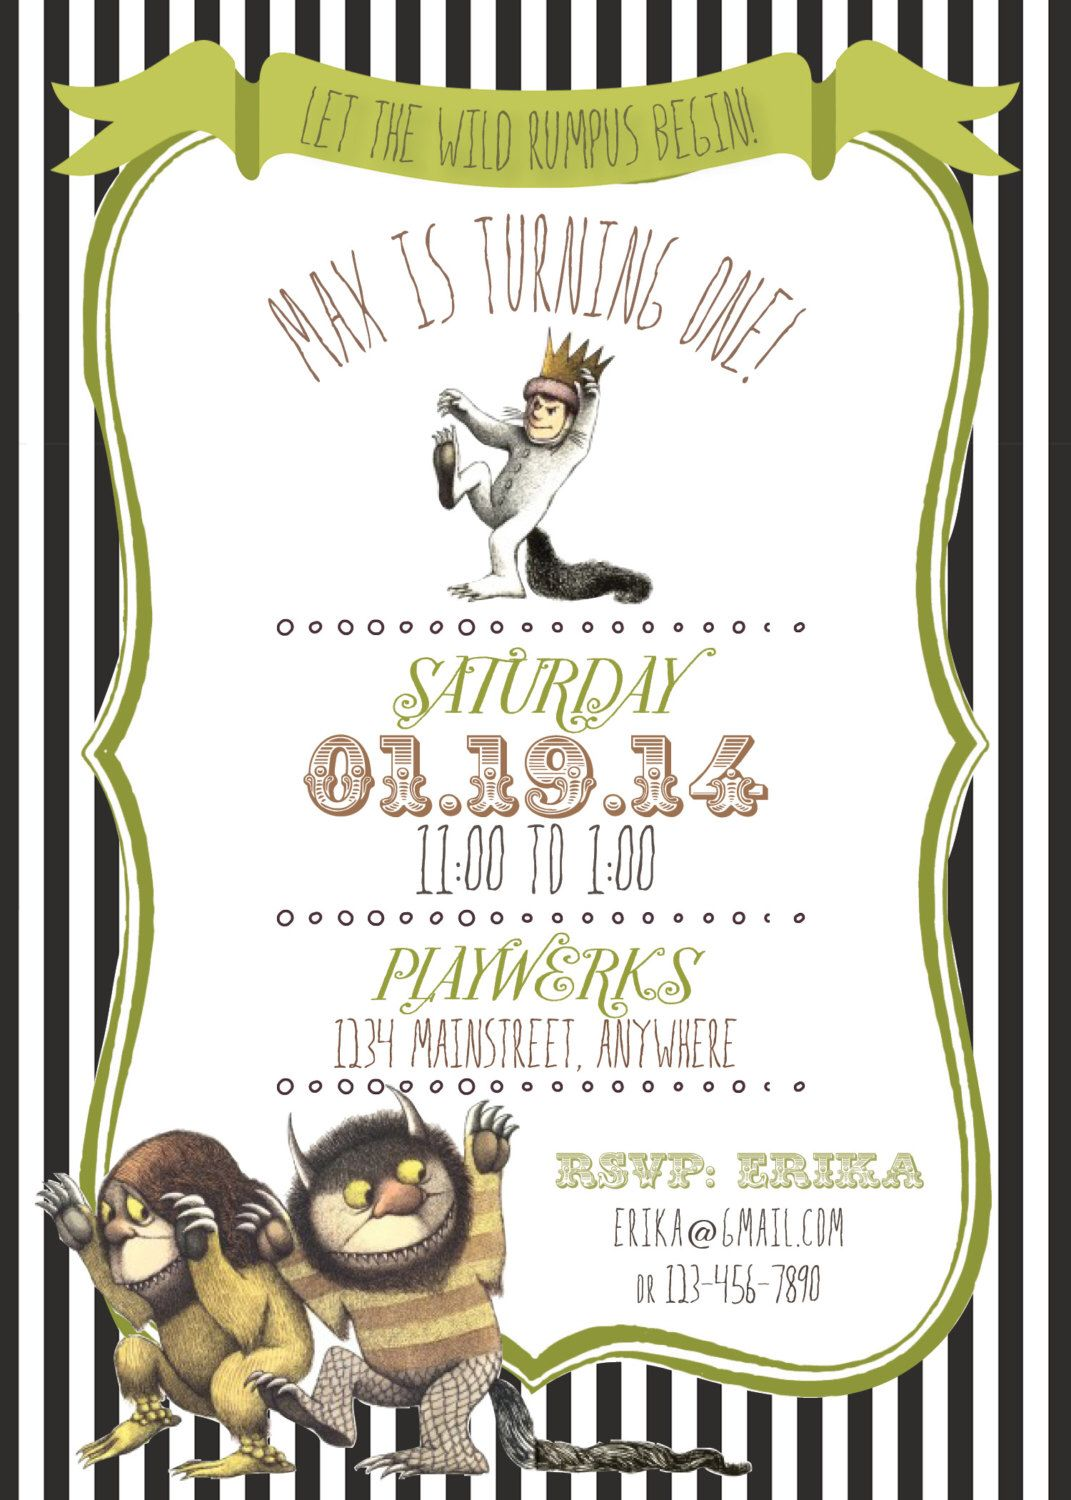 Where the Wild Things Are Invitation by RAWkonversations on Etsy https://www.etsy.com/listing/172913498/where-the-wild-things-are-invitation